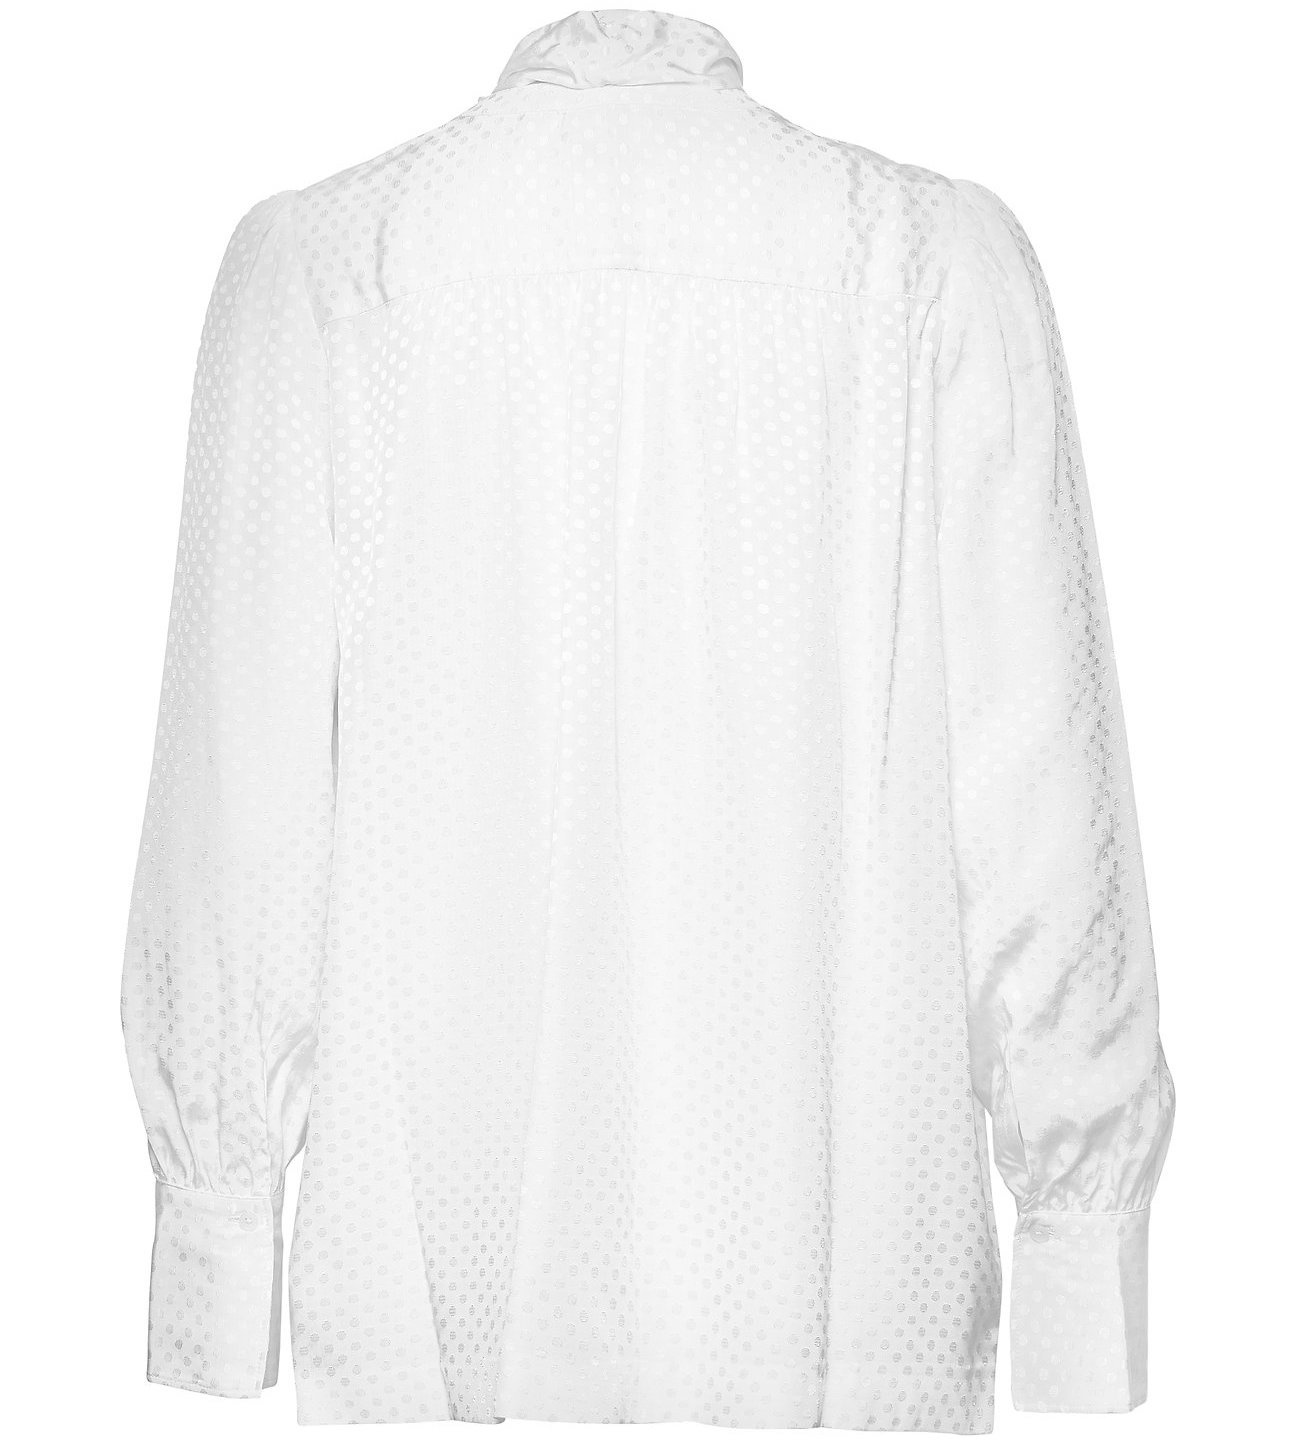 Tommy Hilfiger Dames blouseshirt, wit